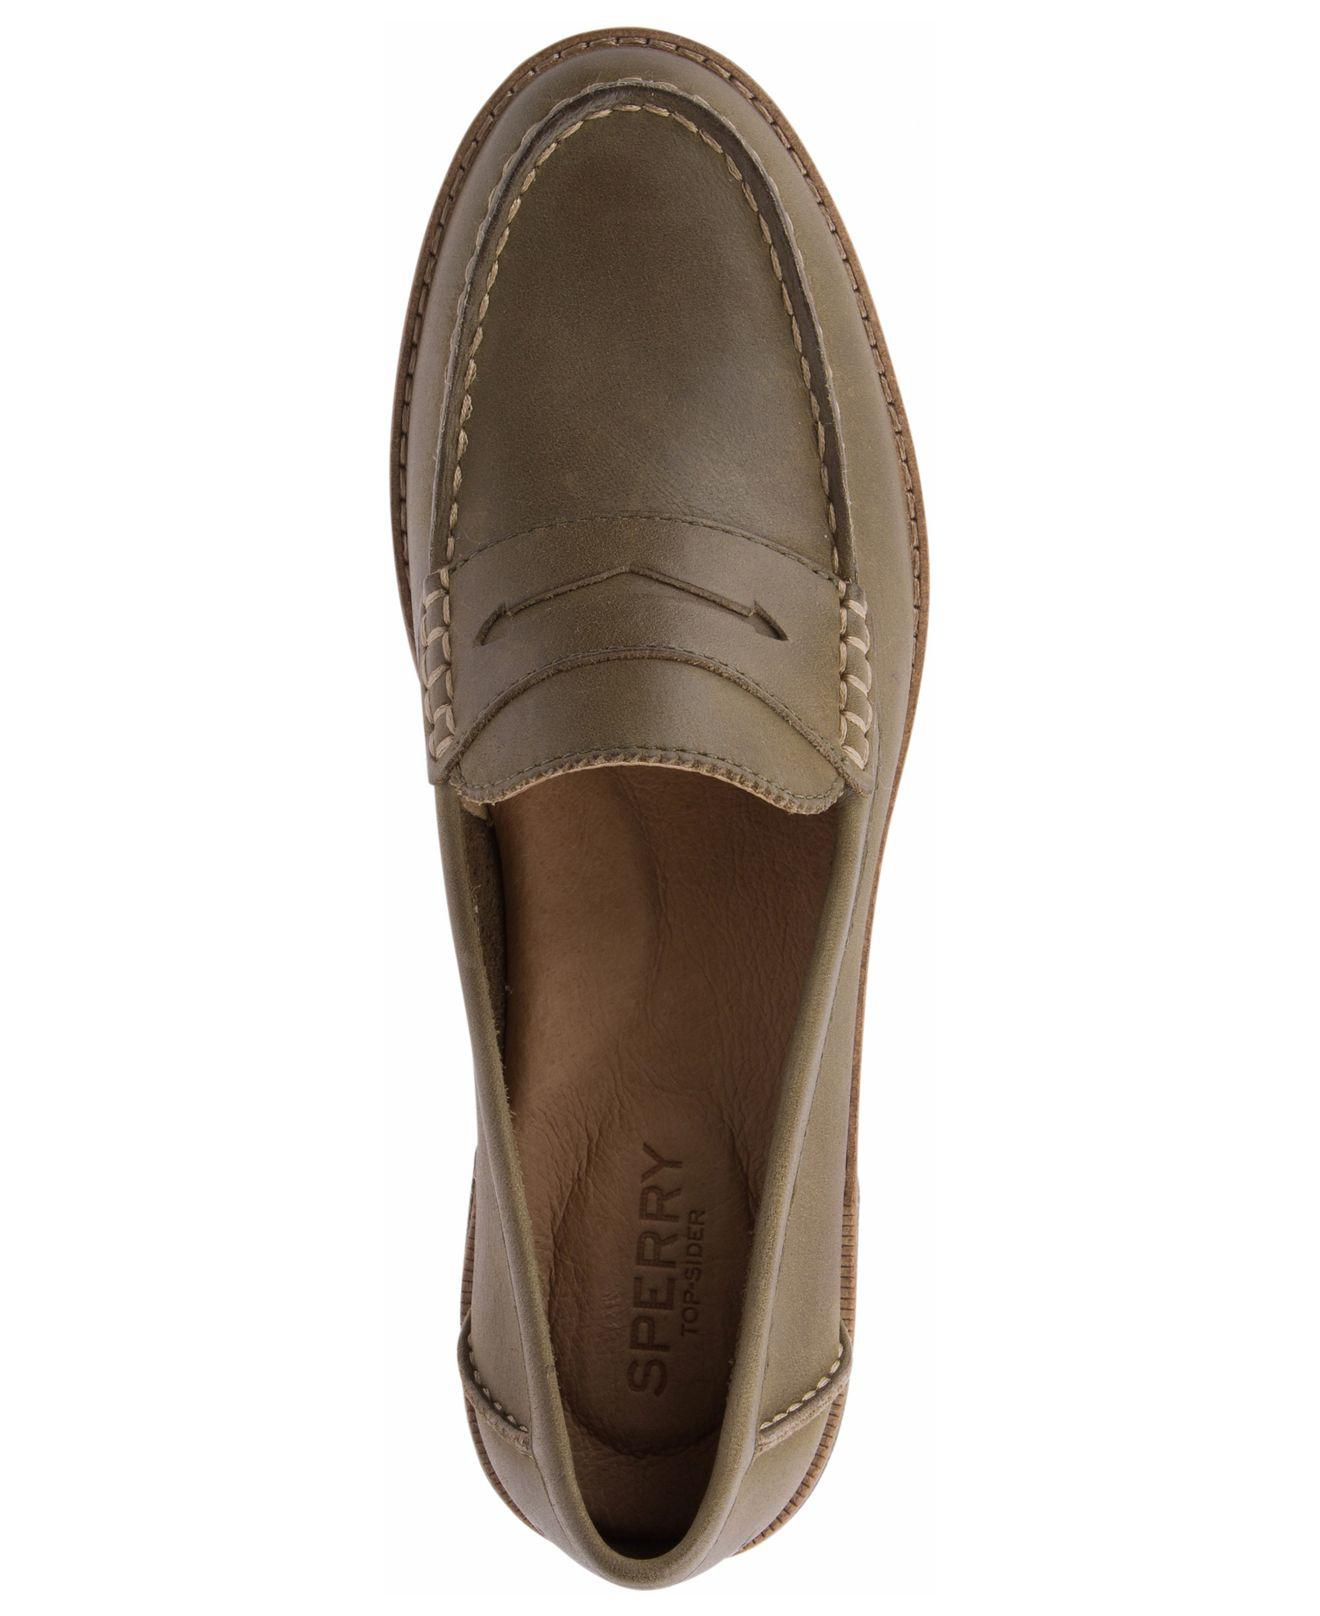 Sperry Top-Sider Leather Seaport Penny Loafer in Olive ...